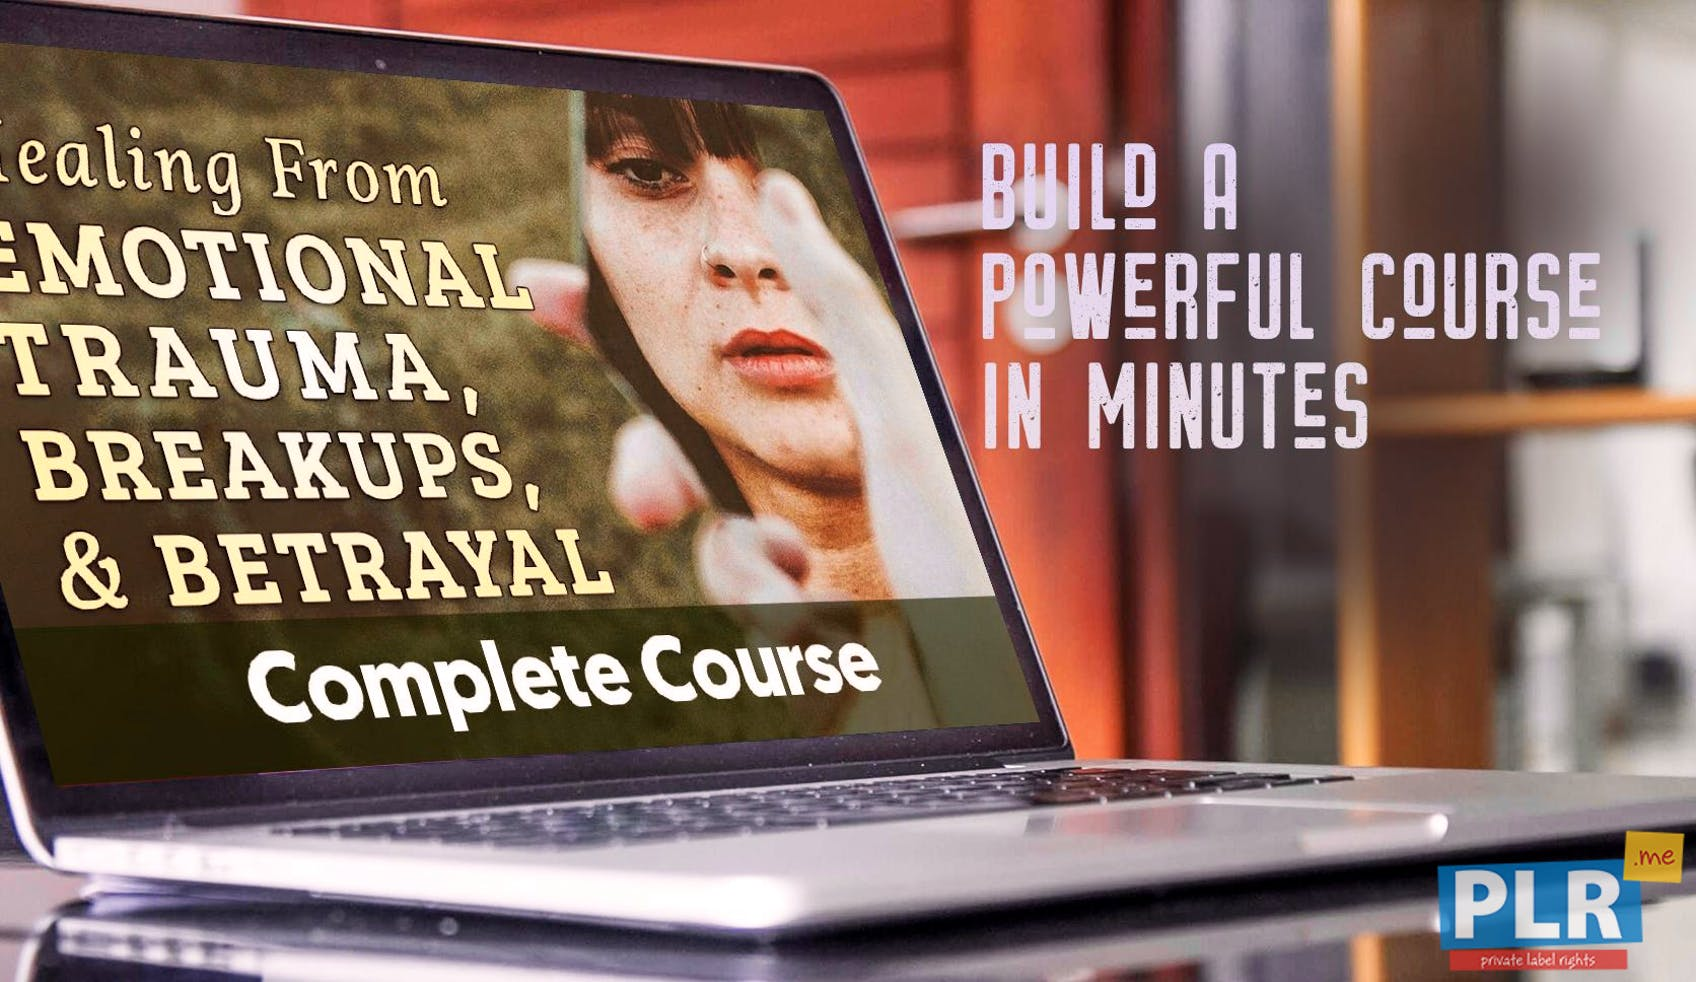 Healing From Emotional Trauma, Breakups, And Betrayal - PLR Course